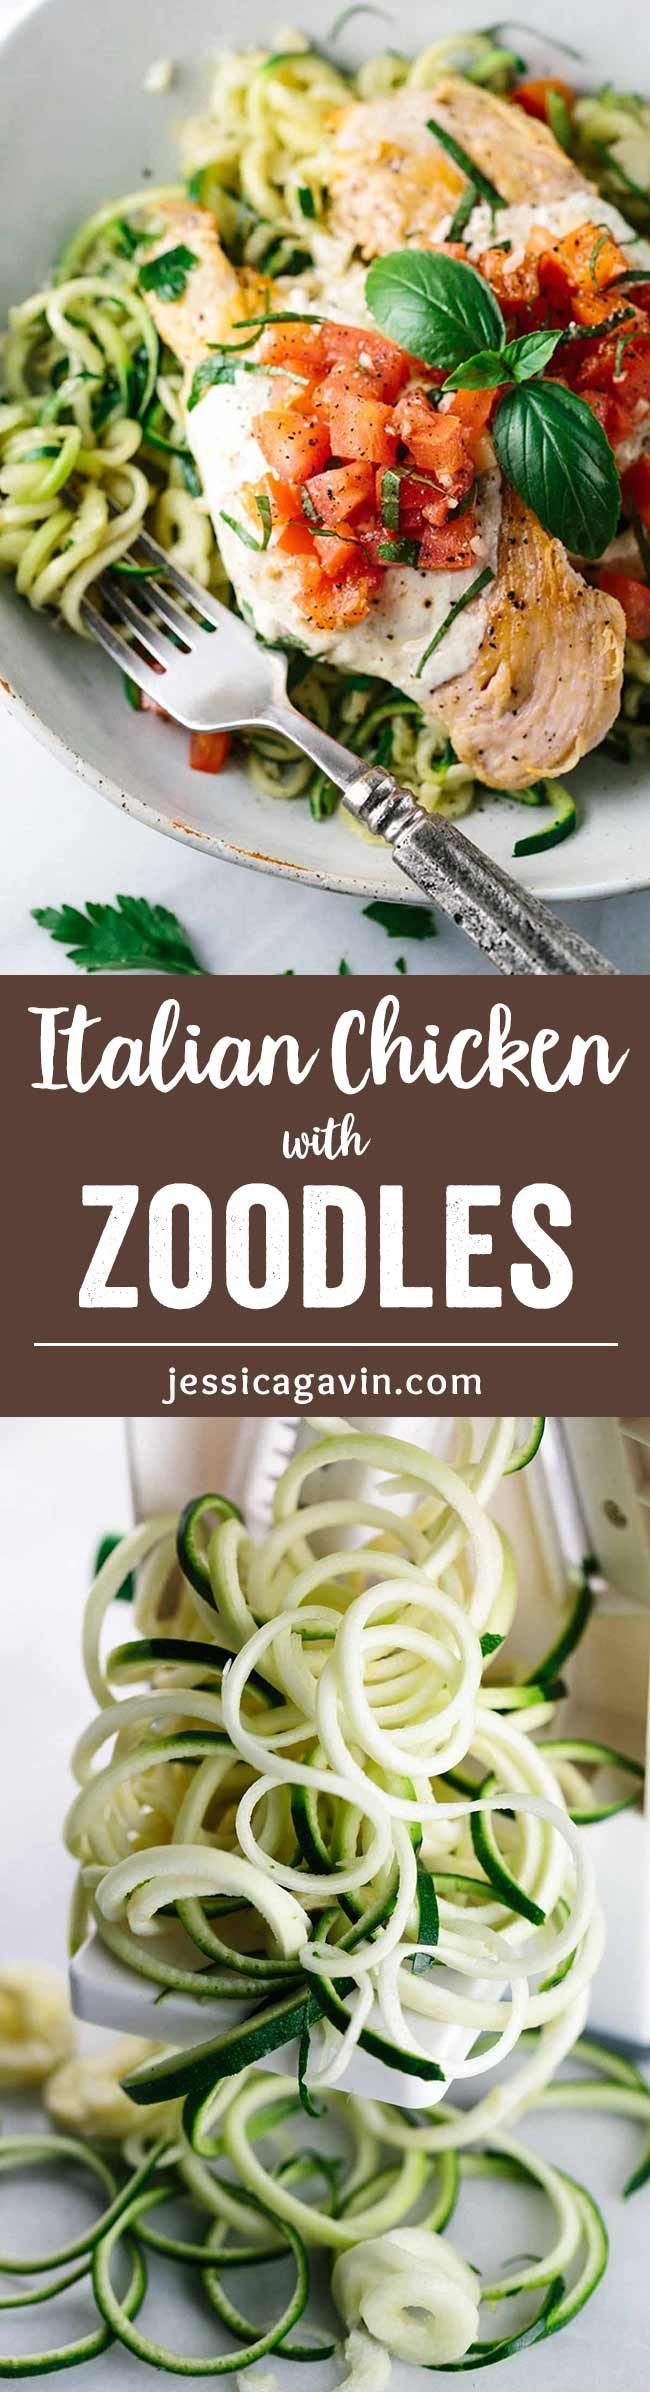 Bruschetta Chicken with Zucchini Noodles - Classic Italian comfort food gets a healthy twist with spiralized vegetable noodles!  via /foodiegavin/